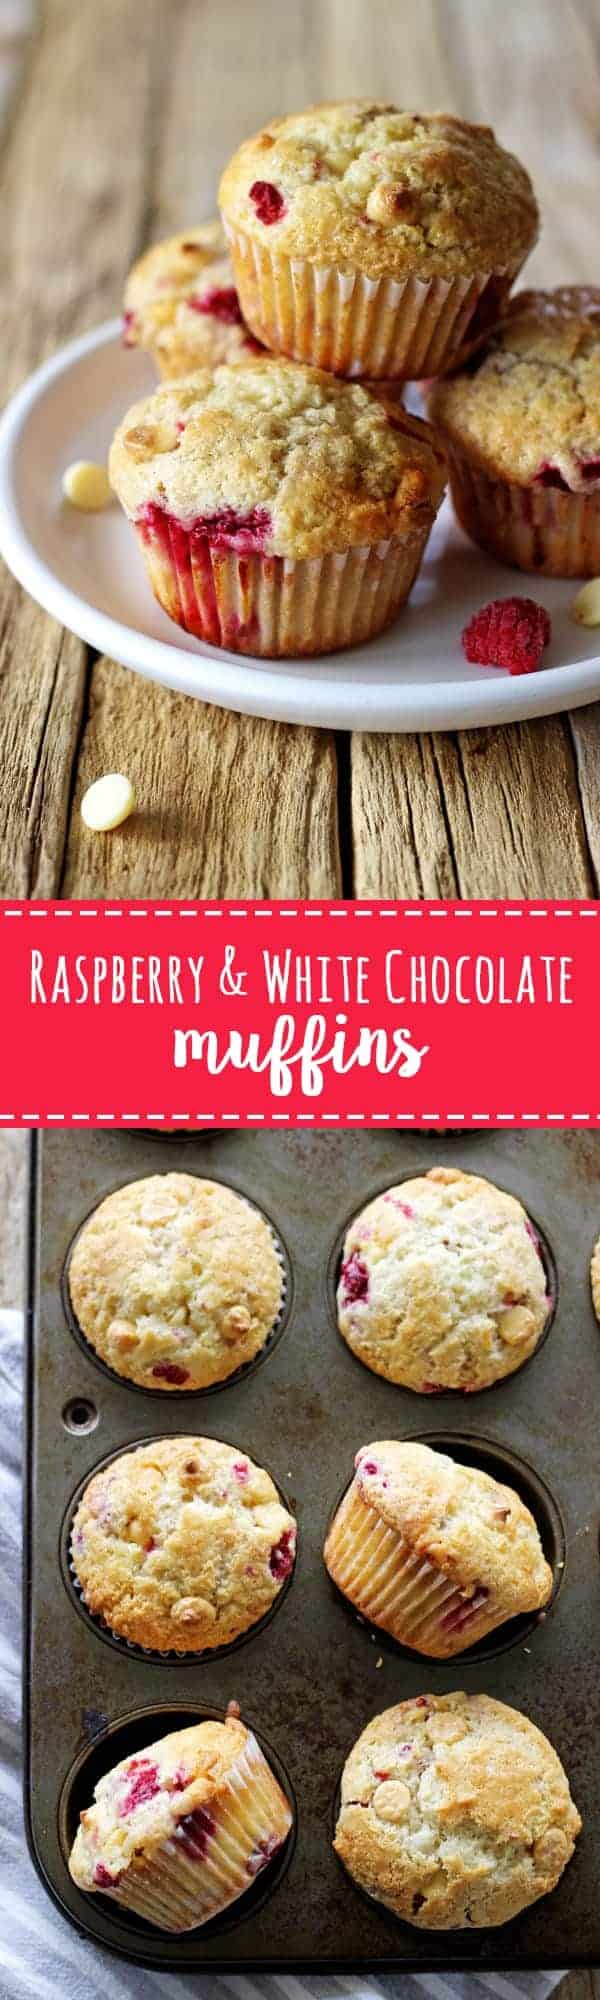 Raspberry & white chocolate muffins - my favourite quick & easy muffin recipe with delicious raspberries & white chocolate in every bite! | thekiwicountrygirl.com